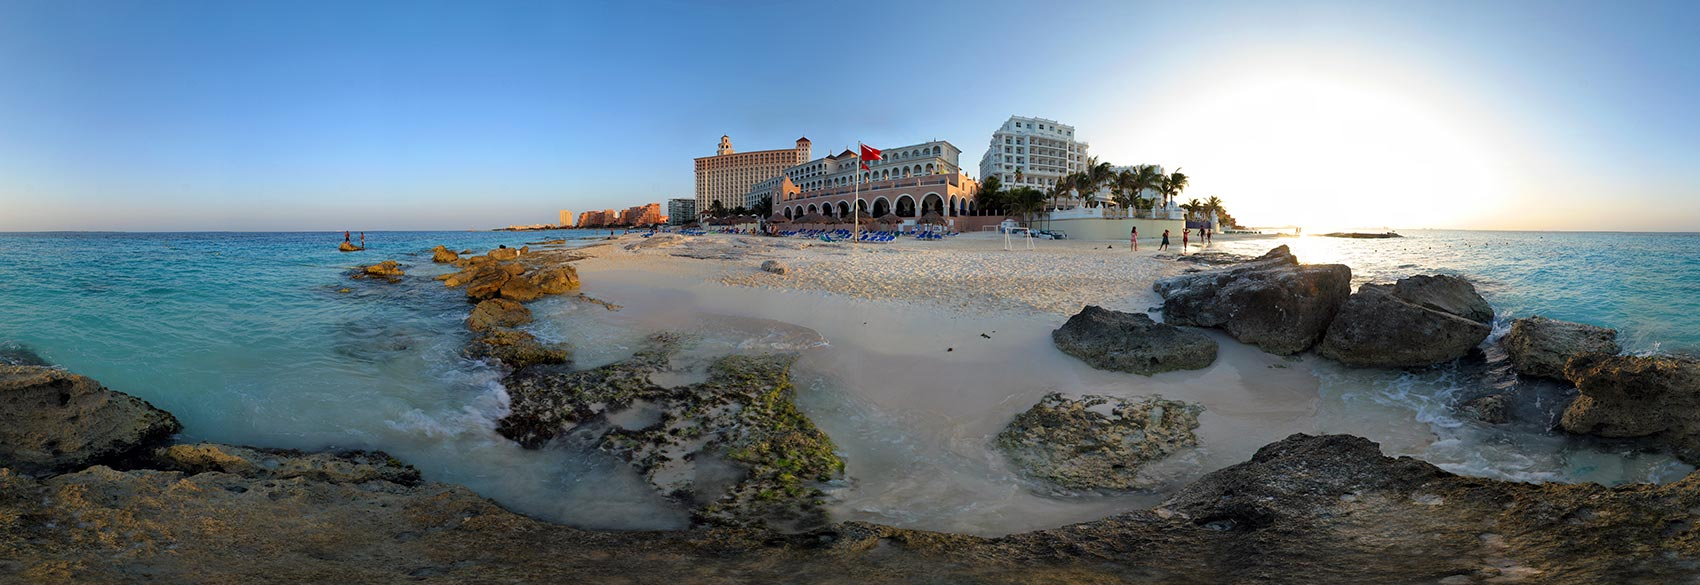 Panoramic Photography of hotels in cancun